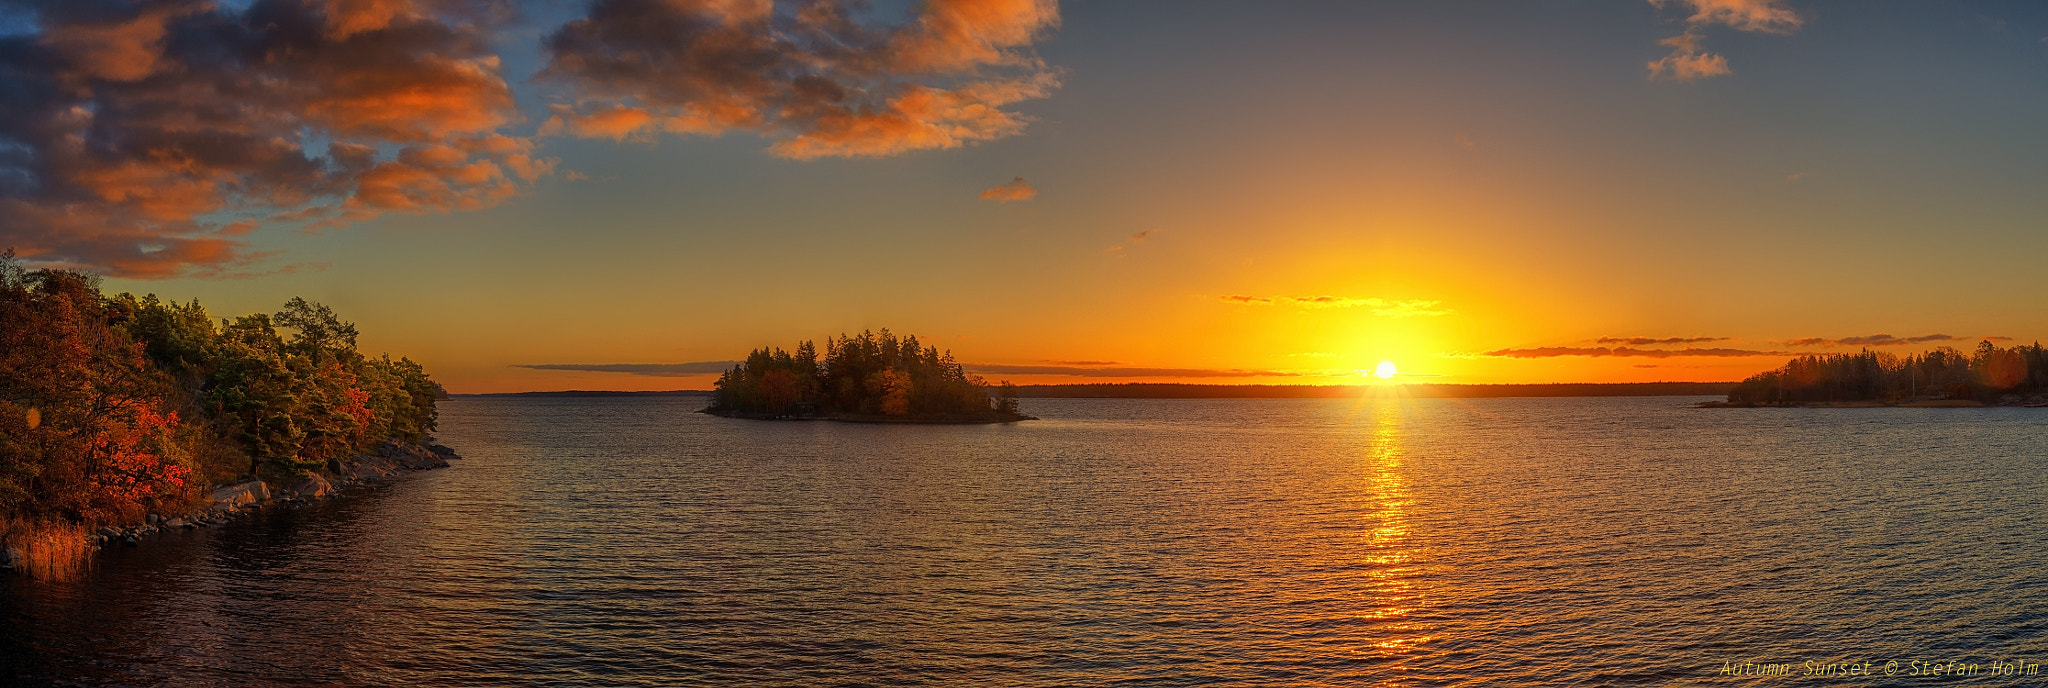 Photograph  Autumn Sunset 2 by Stefan Holm on 500px